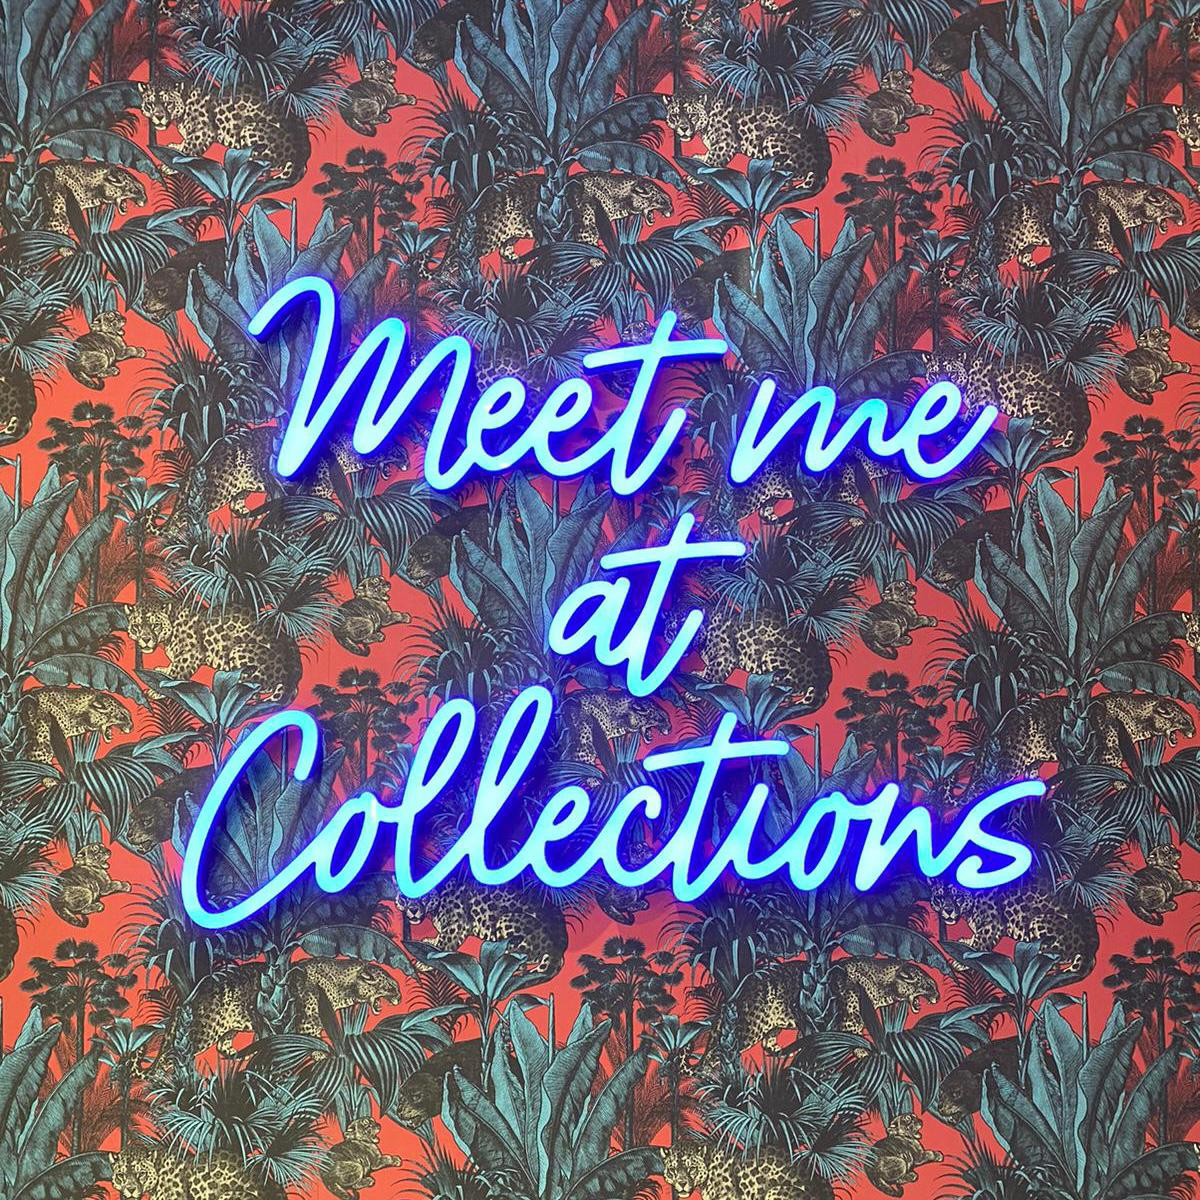 Meet Me At CollectionsJPG